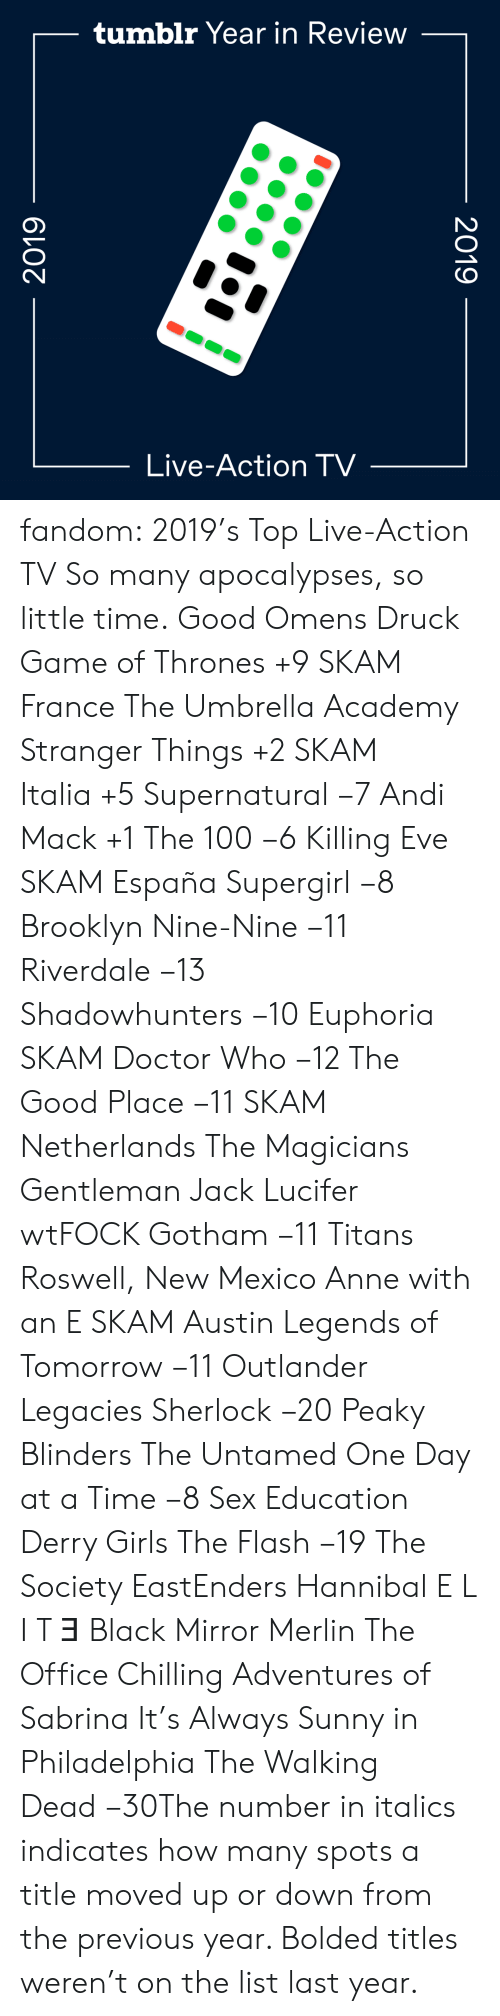 Doctor Who: tumblr Year in Review  Live-Action TV-  2019  2019 fandom:  2019's Top Live-Action TV  So many apocalypses, so little time.  Good Omens  Druck  Game of Thrones +9  SKAM France  The Umbrella Academy  Stranger Things +2  SKAM Italia +5  Supernatural −7  Andi Mack +1  The 100 −6  Killing Eve   SKAM España  Supergirl −8  Brooklyn Nine-Nine −11  Riverdale −13  Shadowhunters −10  Euphoria  SKAM  Doctor Who −12  The Good Place −11  SKAM Netherlands  The Magicians  Gentleman Jack  Lucifer  wtFOCK  Gotham −11  Titans  Roswell, New Mexico  Anne with an E  SKAM Austin  Legends of Tomorrow −11  Outlander  Legacies  Sherlock −20  Peaky Blinders  The Untamed  One Day at a Time −8  Sex Education  Derry Girls  The Flash −19  The Society  EastEnders  Hannibal  E L I T Ǝ  Black Mirror  Merlin  The Office  Chilling Adventures of Sabrina  It's Always Sunny in Philadelphia The Walking Dead −30The number in italics indicates how many spots a title moved up or down from the previous year. Bolded titles weren't on the list last year.